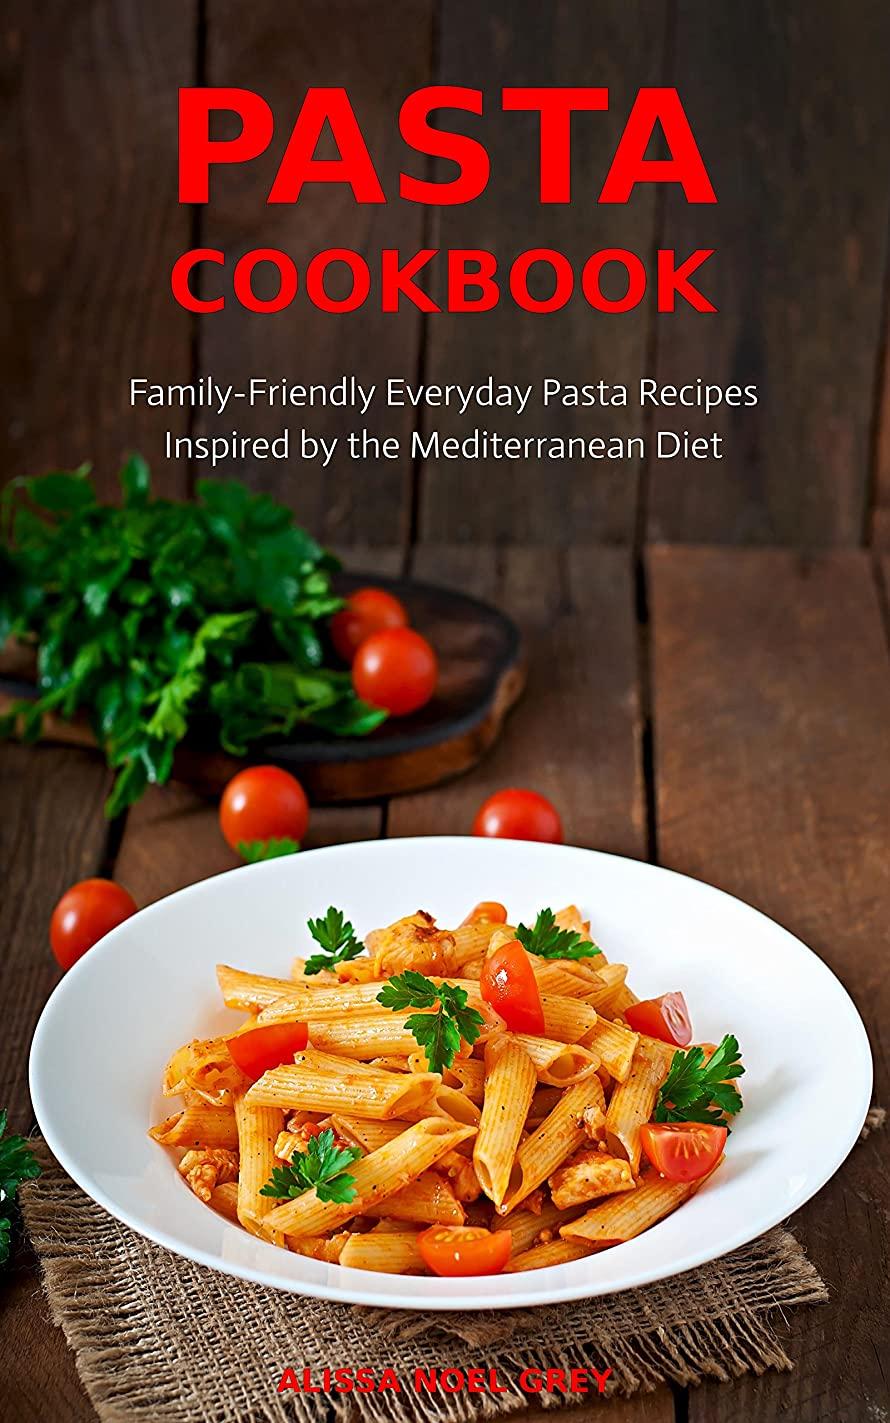 殺す同志アクティブPasta Cookbook: Family-Friendly Everyday Pasta Recipes Inspired by The Mediterranean Diet Vol 2: Dump Dinners and One-Pot Meals (Quick and Easy Pasta Cookbooks) (English Edition)